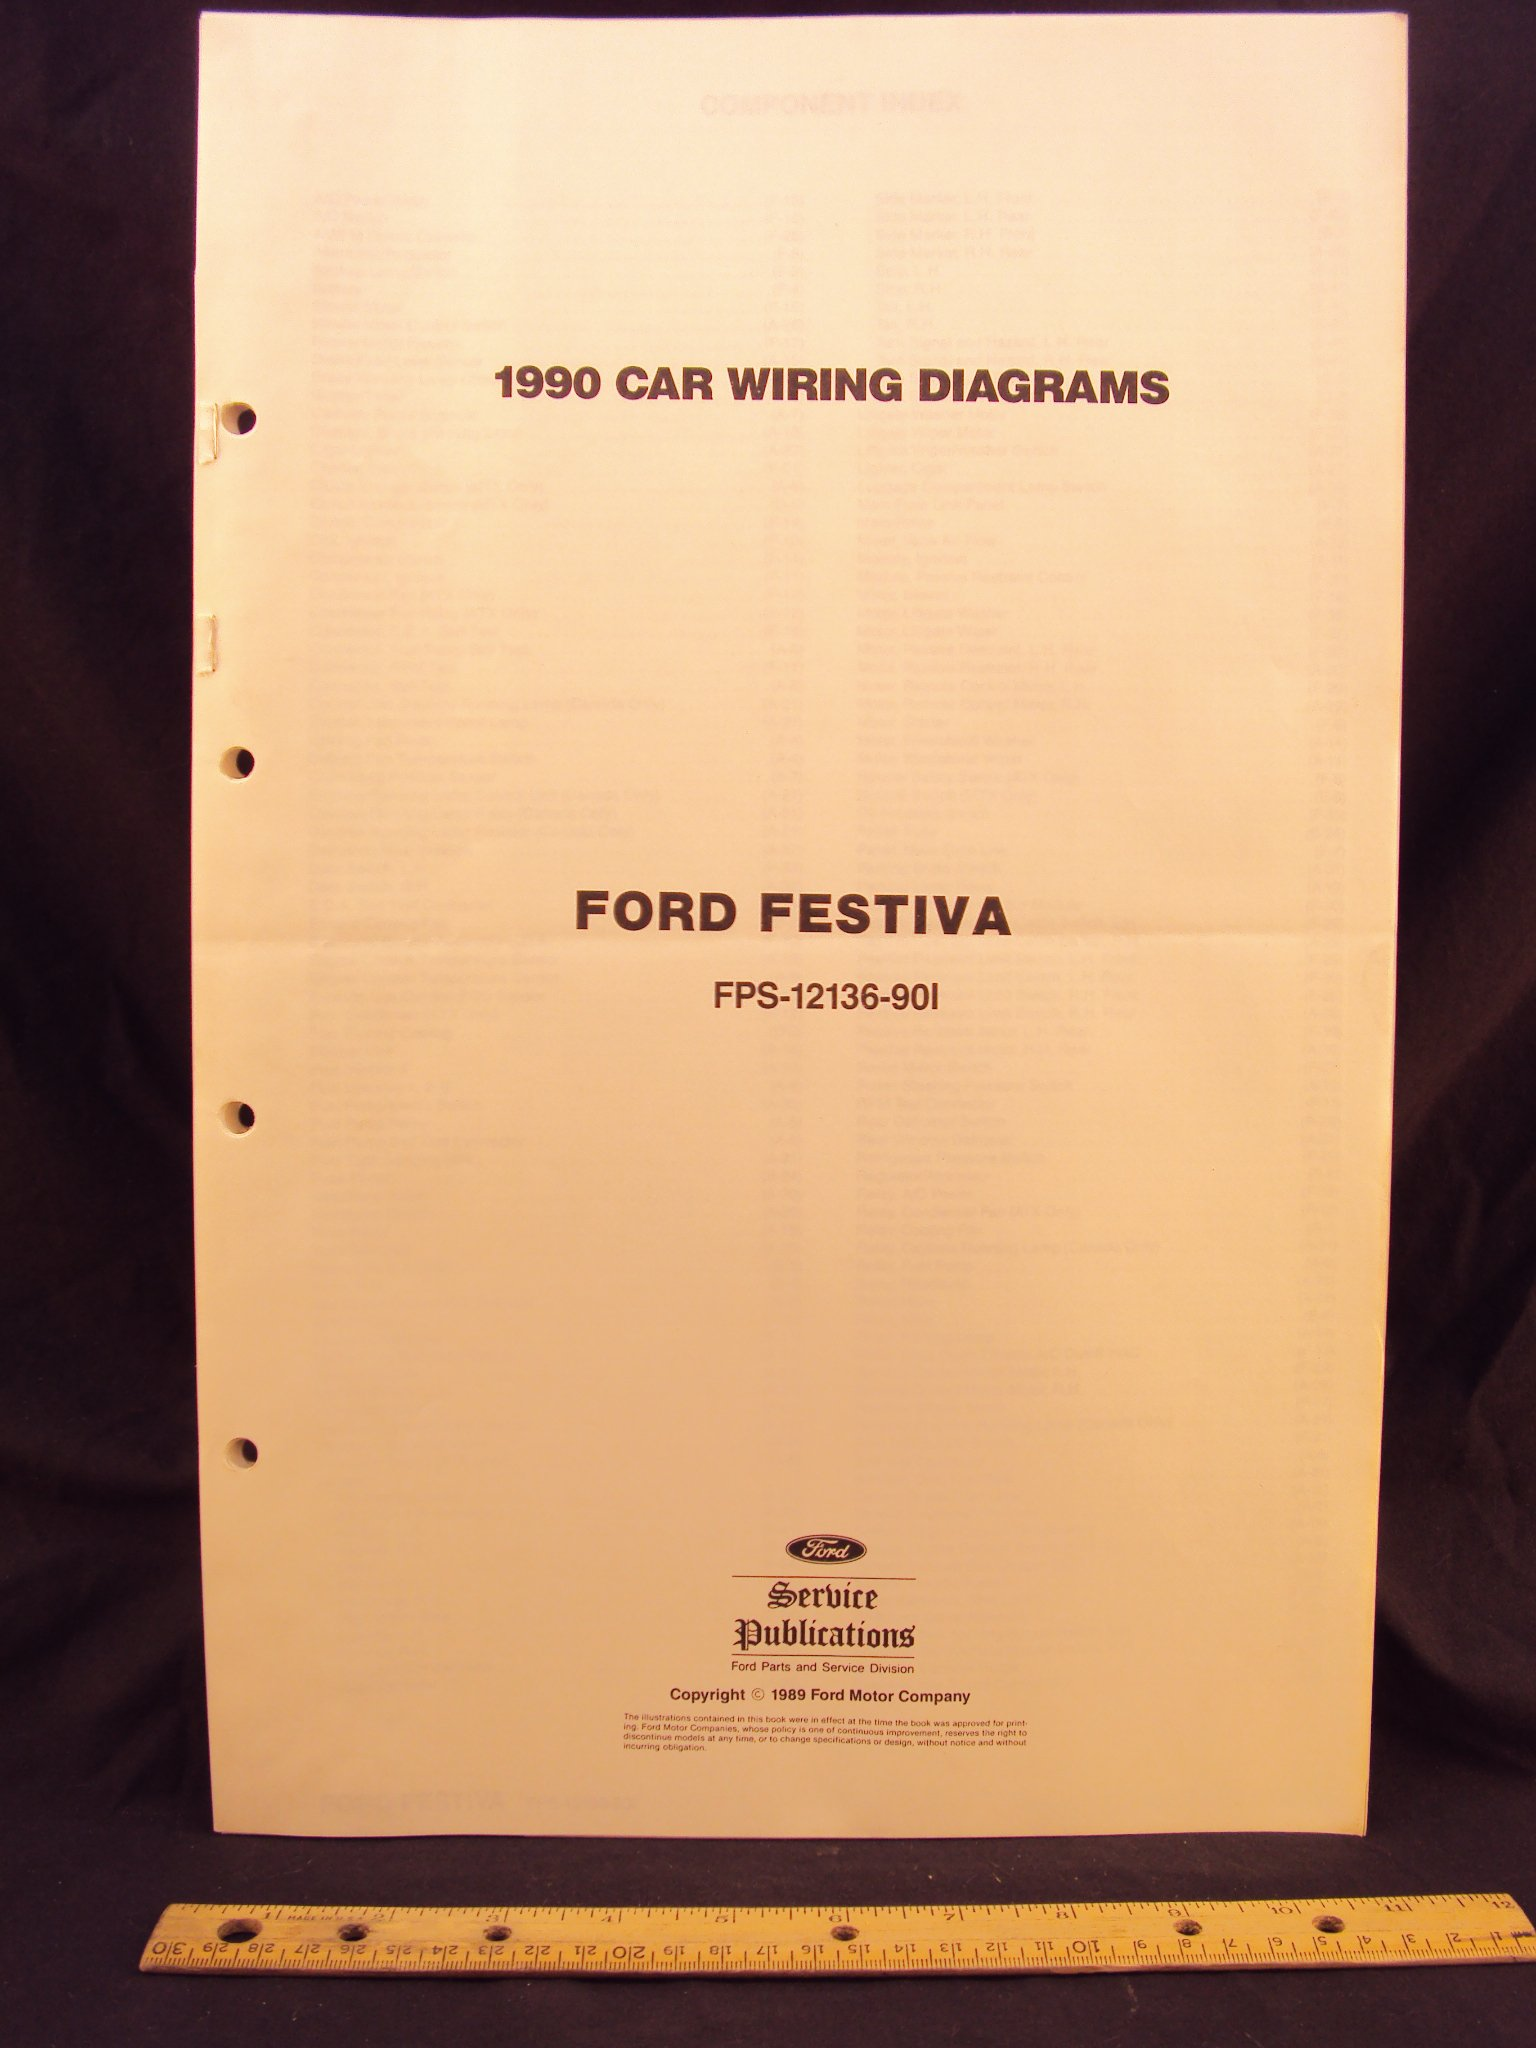 91 Ford Festiva Wiring Diagram Library Kioti Tractor Ck25 Ignition Diagrams 1990 Electrical Schematics Rh Amazon Com 1991 1993